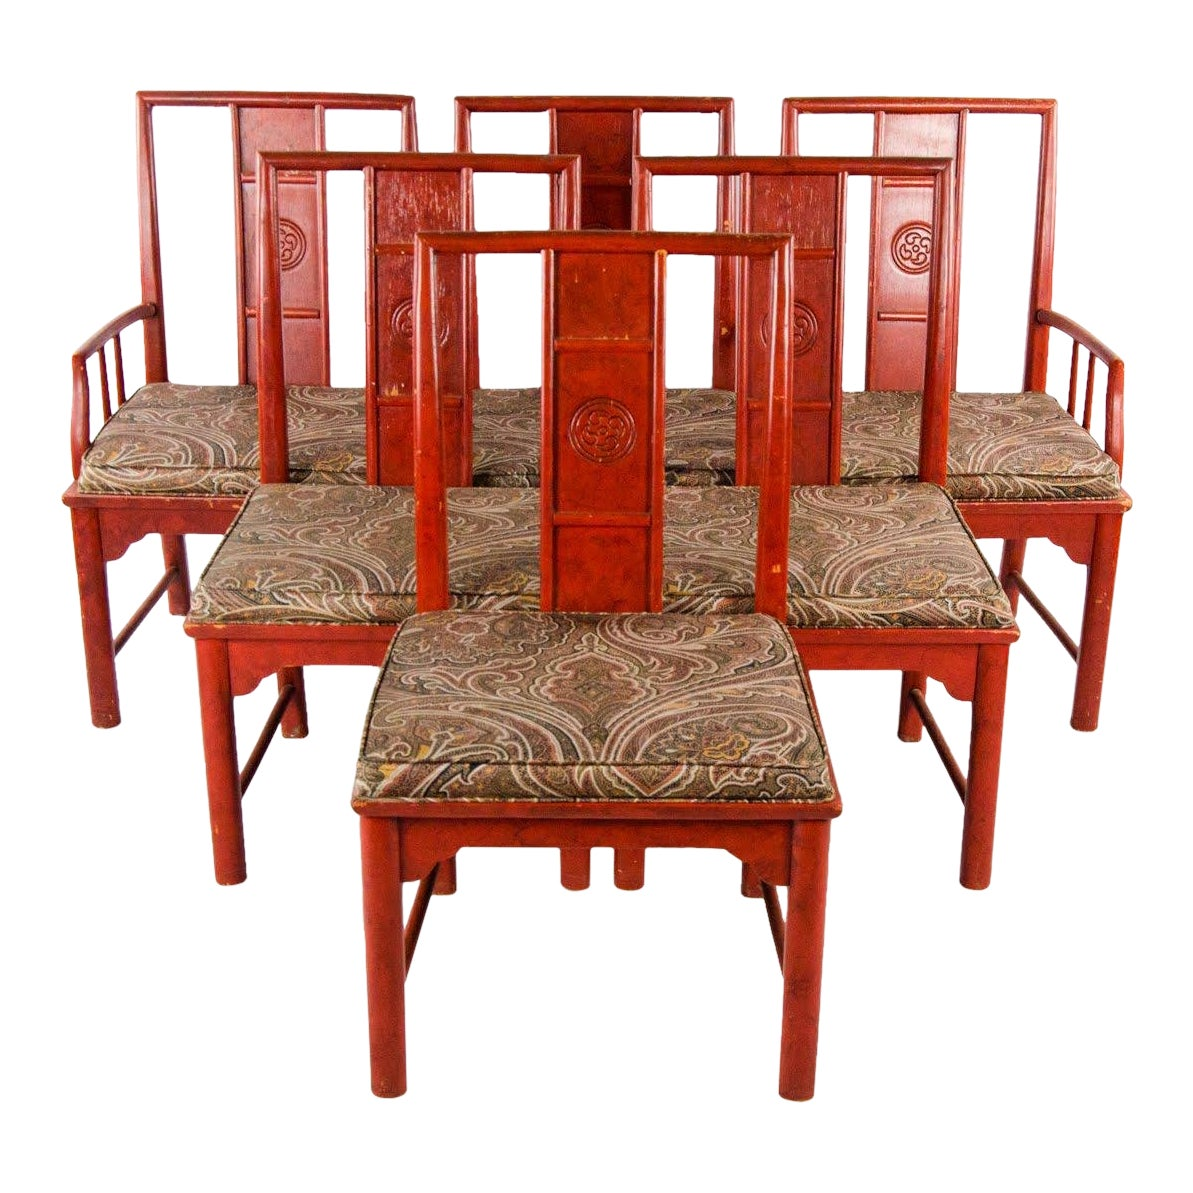 Early 20th century vintage thomasville chinese style red lacquer and upholstered dining chairs set of 6 chairish